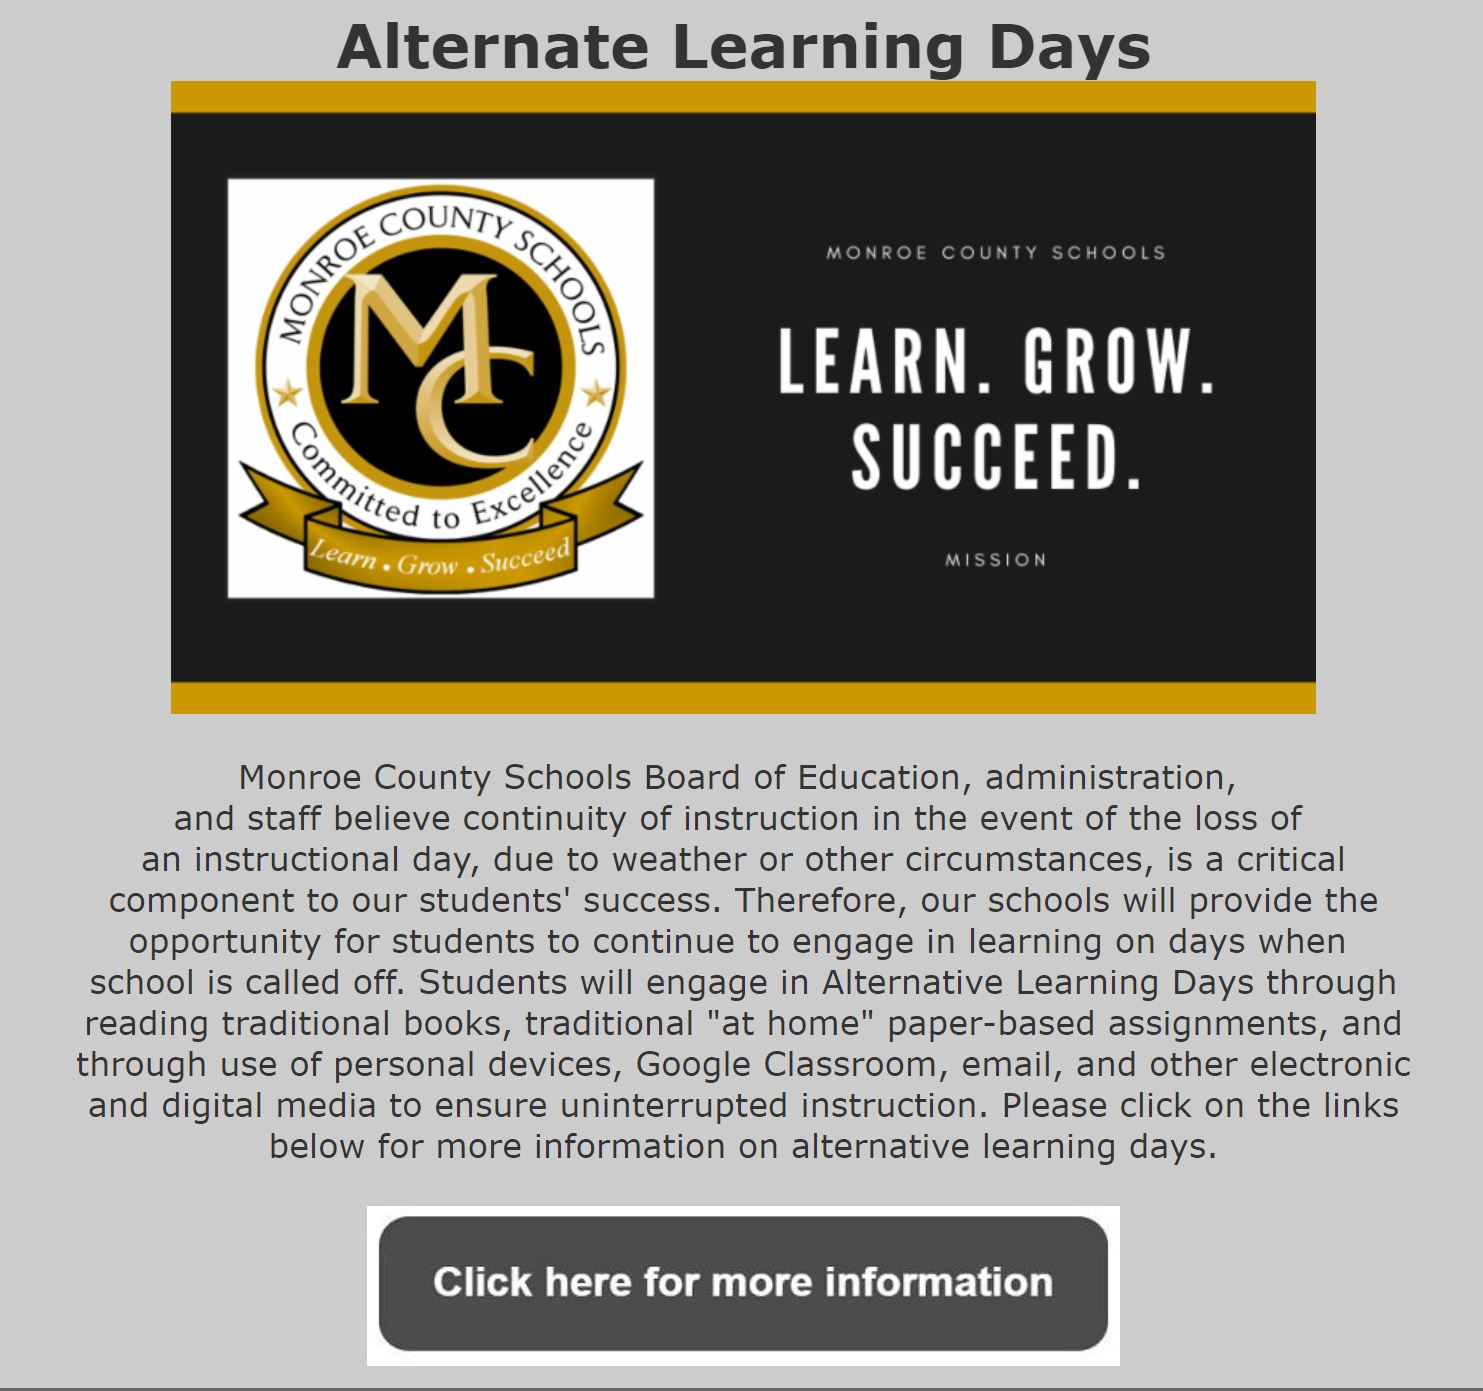 Alternate Learning Days